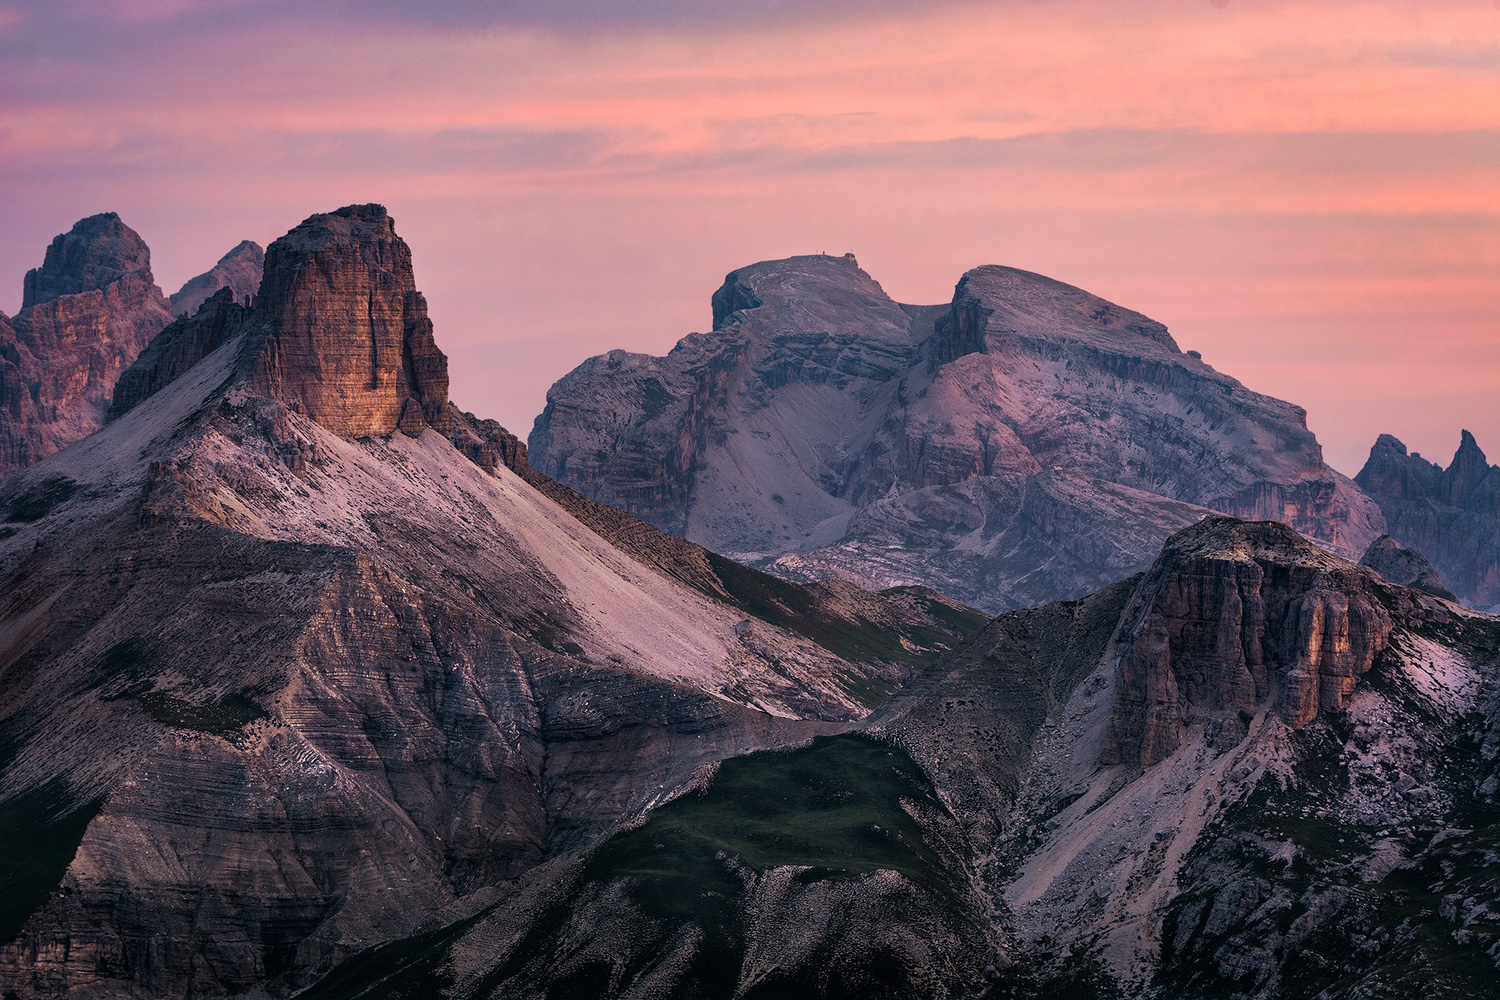 Morning in the Dolomites by Vid Rojc